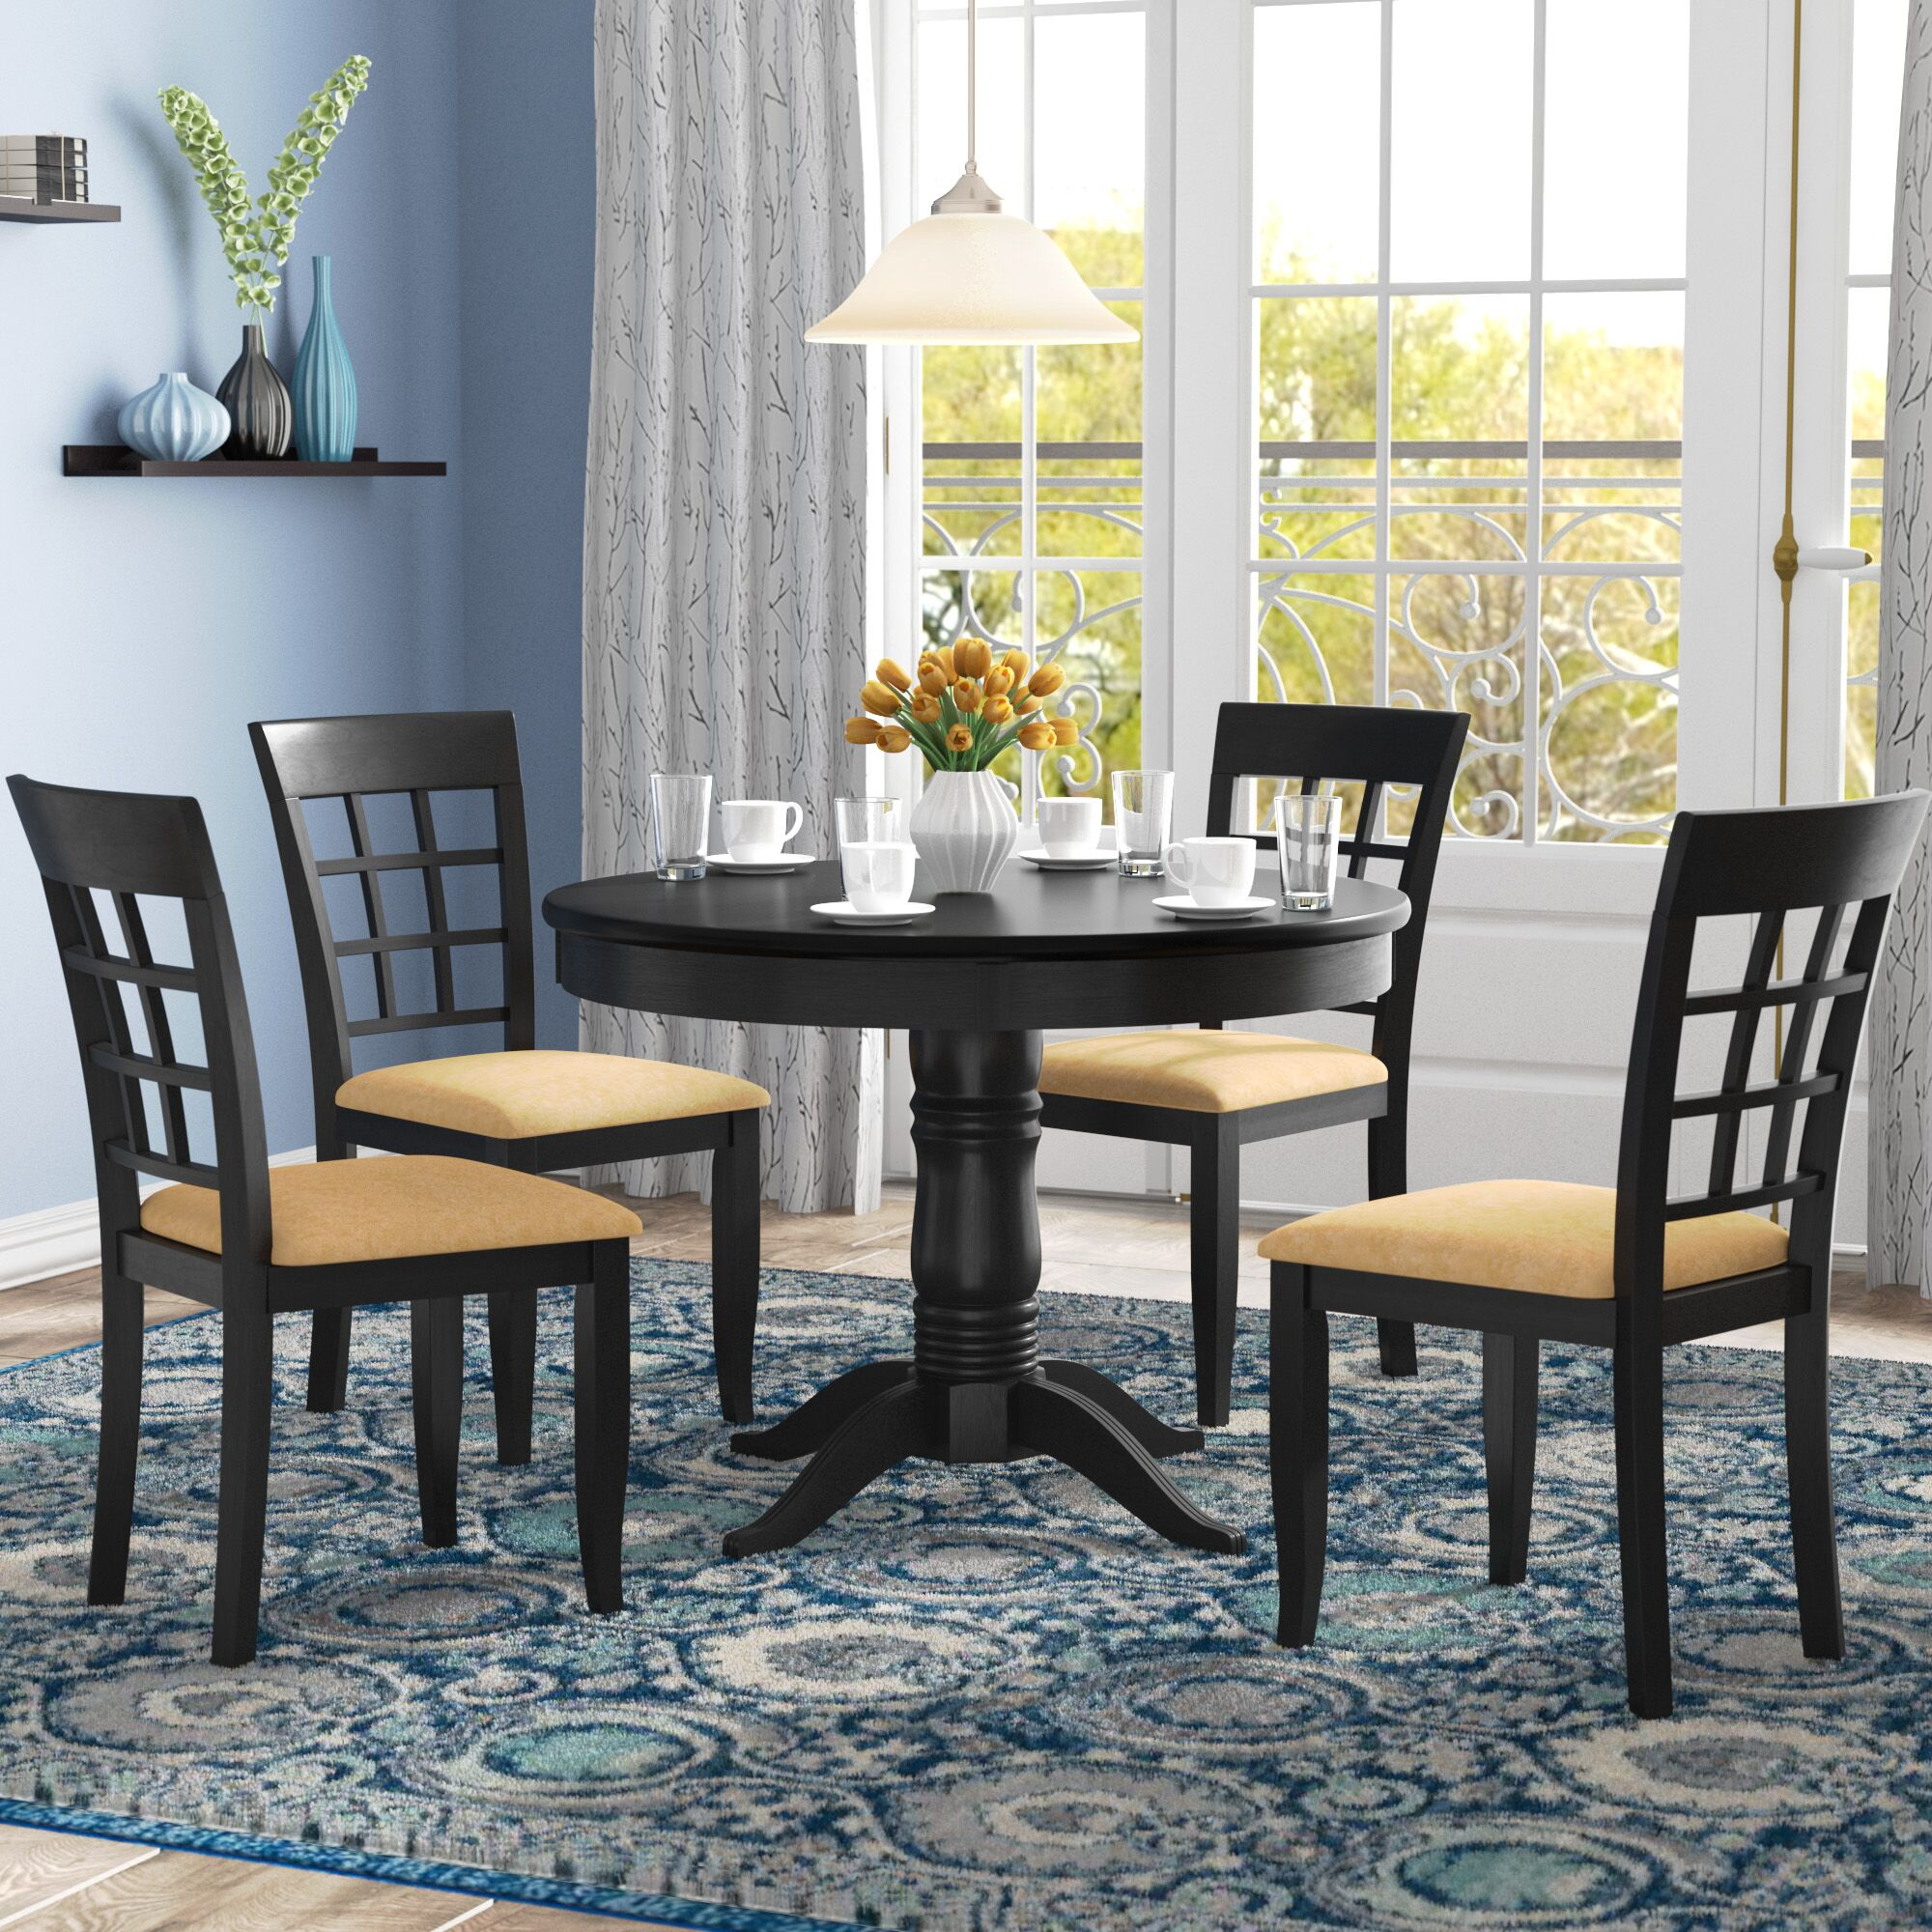 Dining Table Sets Oneill 5 Piece Wood Dining Set